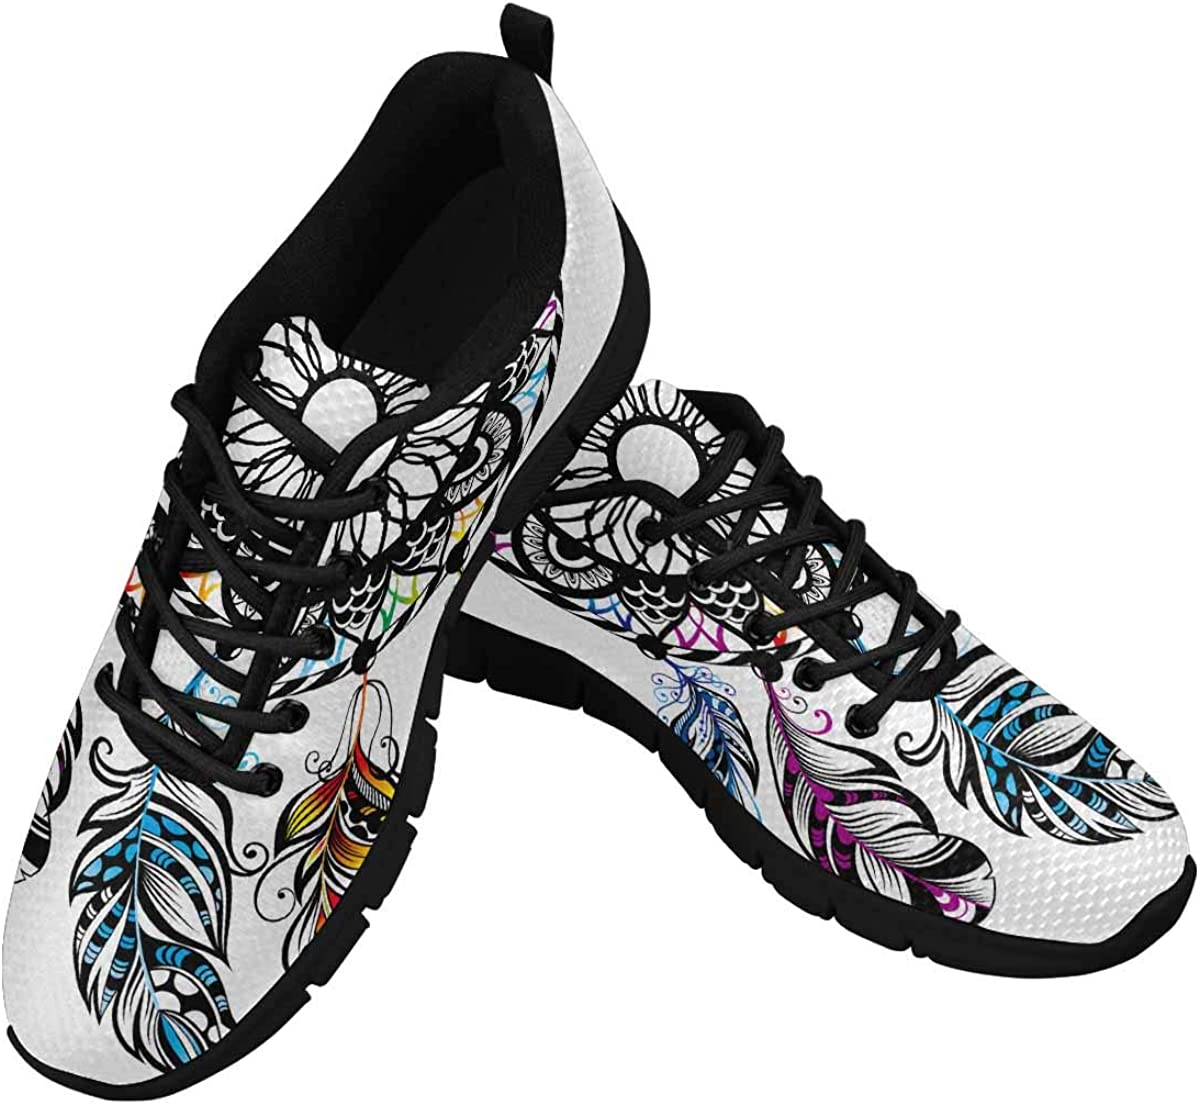 INTERESTPRINT Pattern with Dream Catcher B Mesh Athletic Sale SALE% OFF Women's Safety and trust